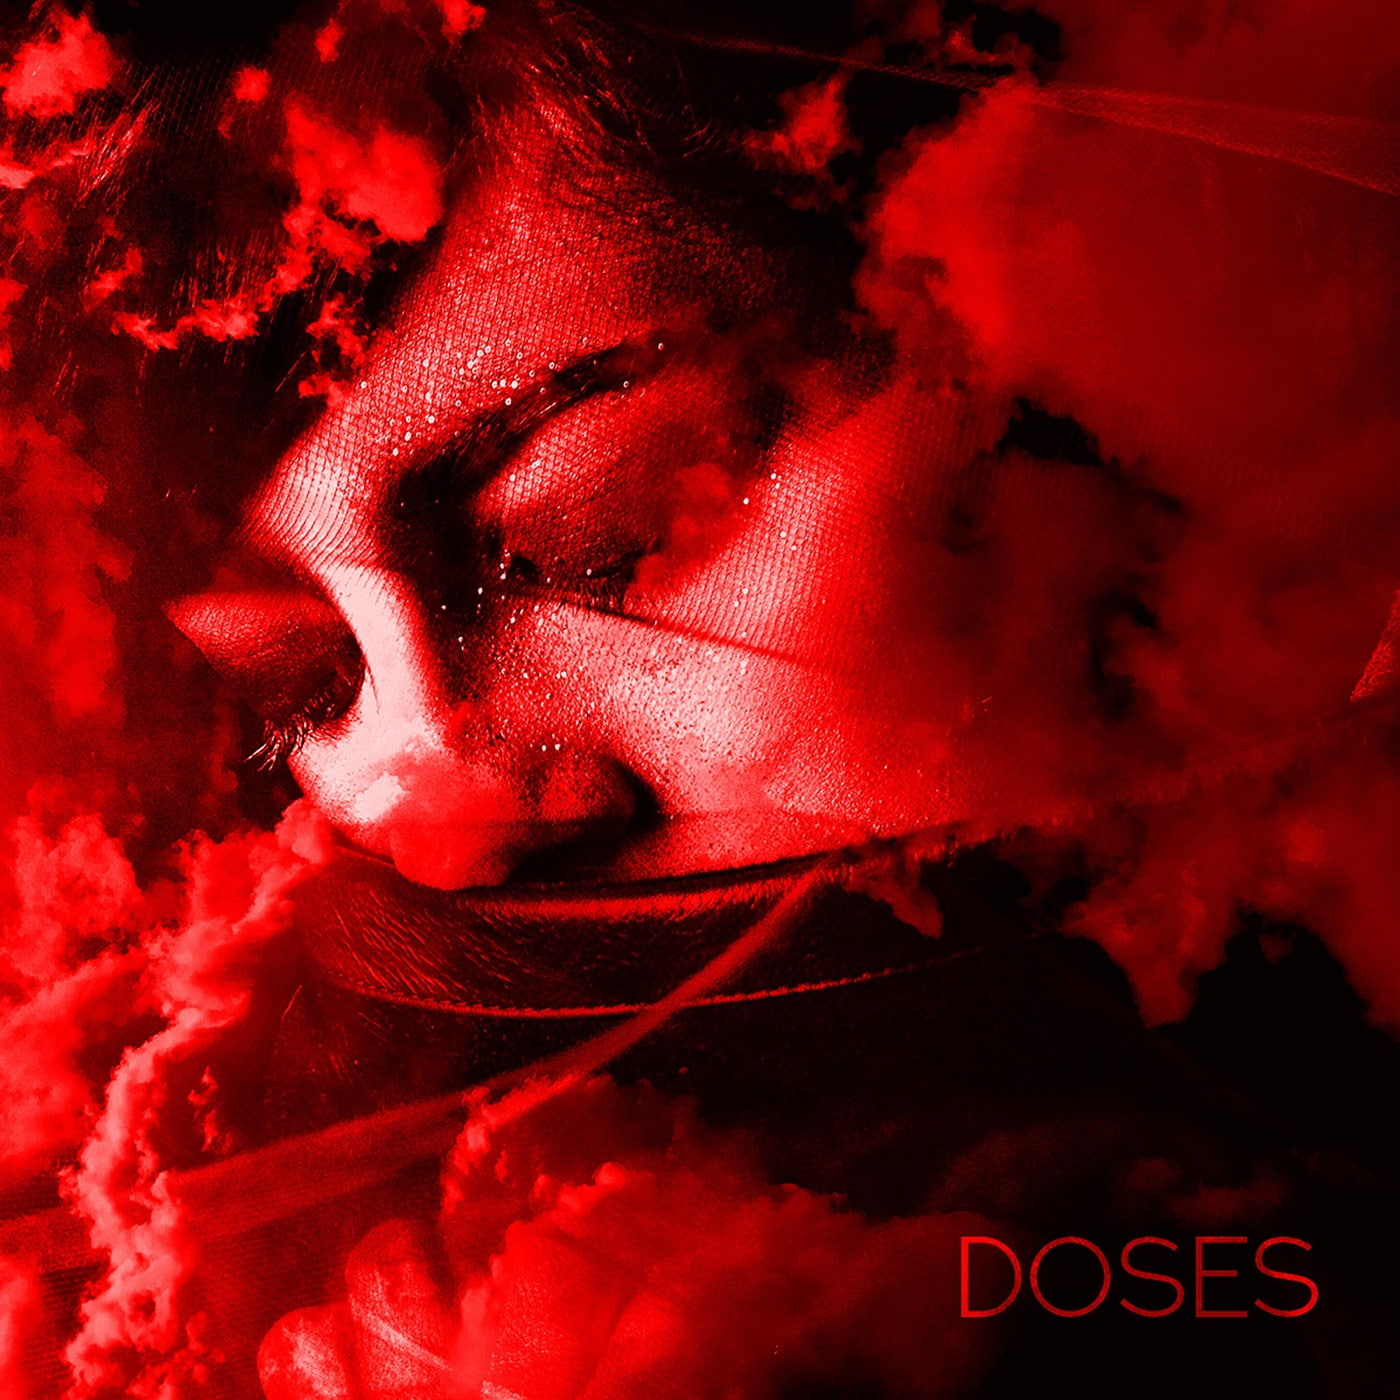 Doses - Doses [EP] (2019)